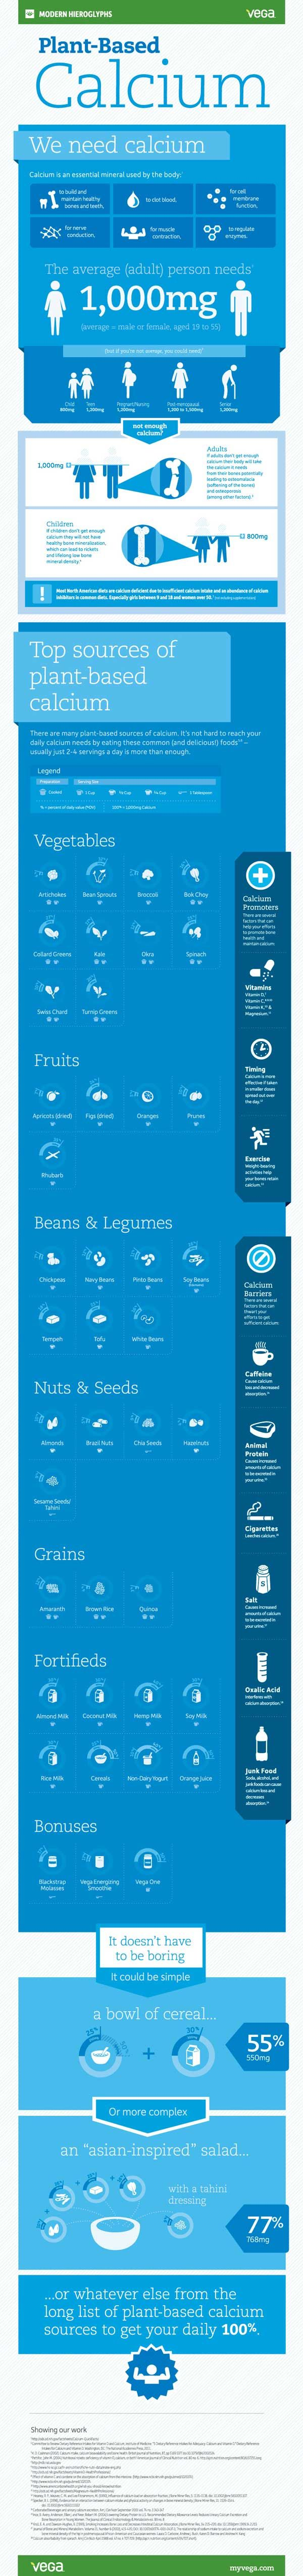 Plant-Based Calcium Sources for Vegans (Infographic) | Care2 Healthy Living